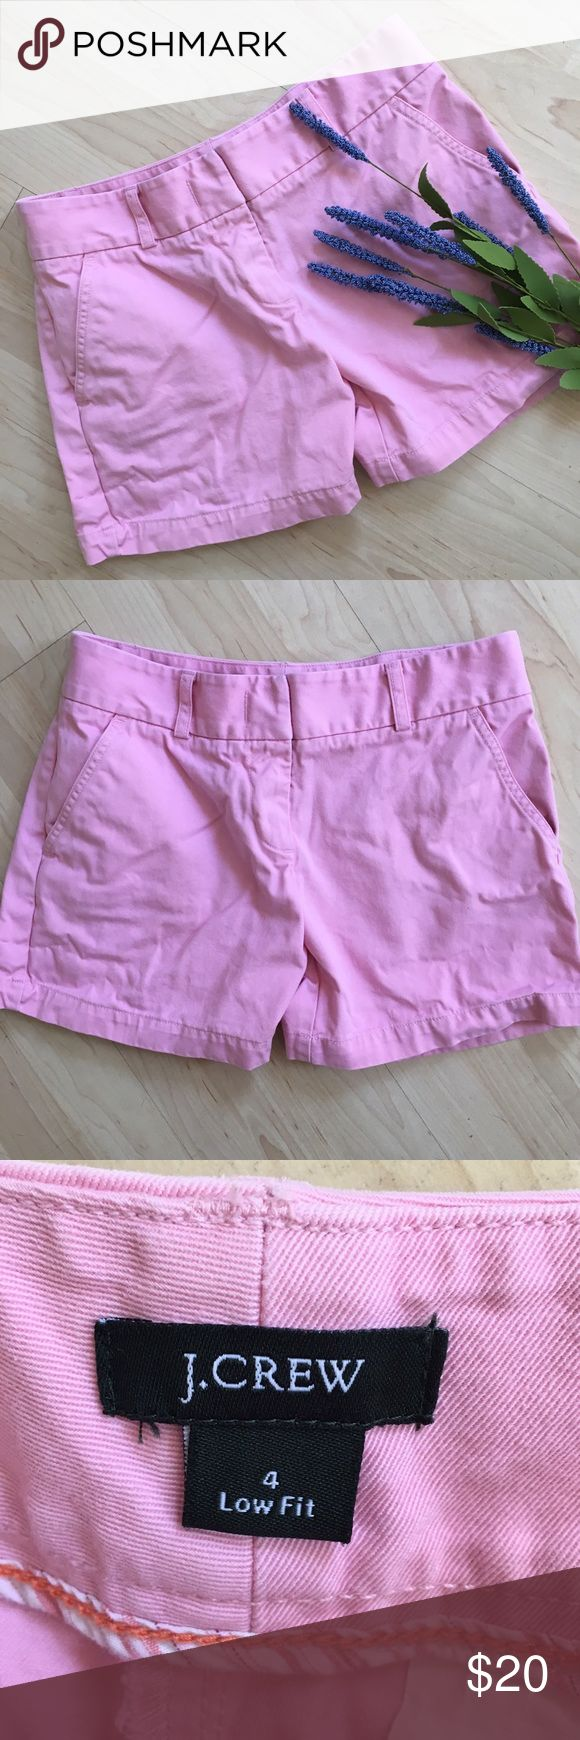 J. Crew light pink shorts Cute J. Crew cotton shorts. Broken in and comfy! J. Crew Shorts